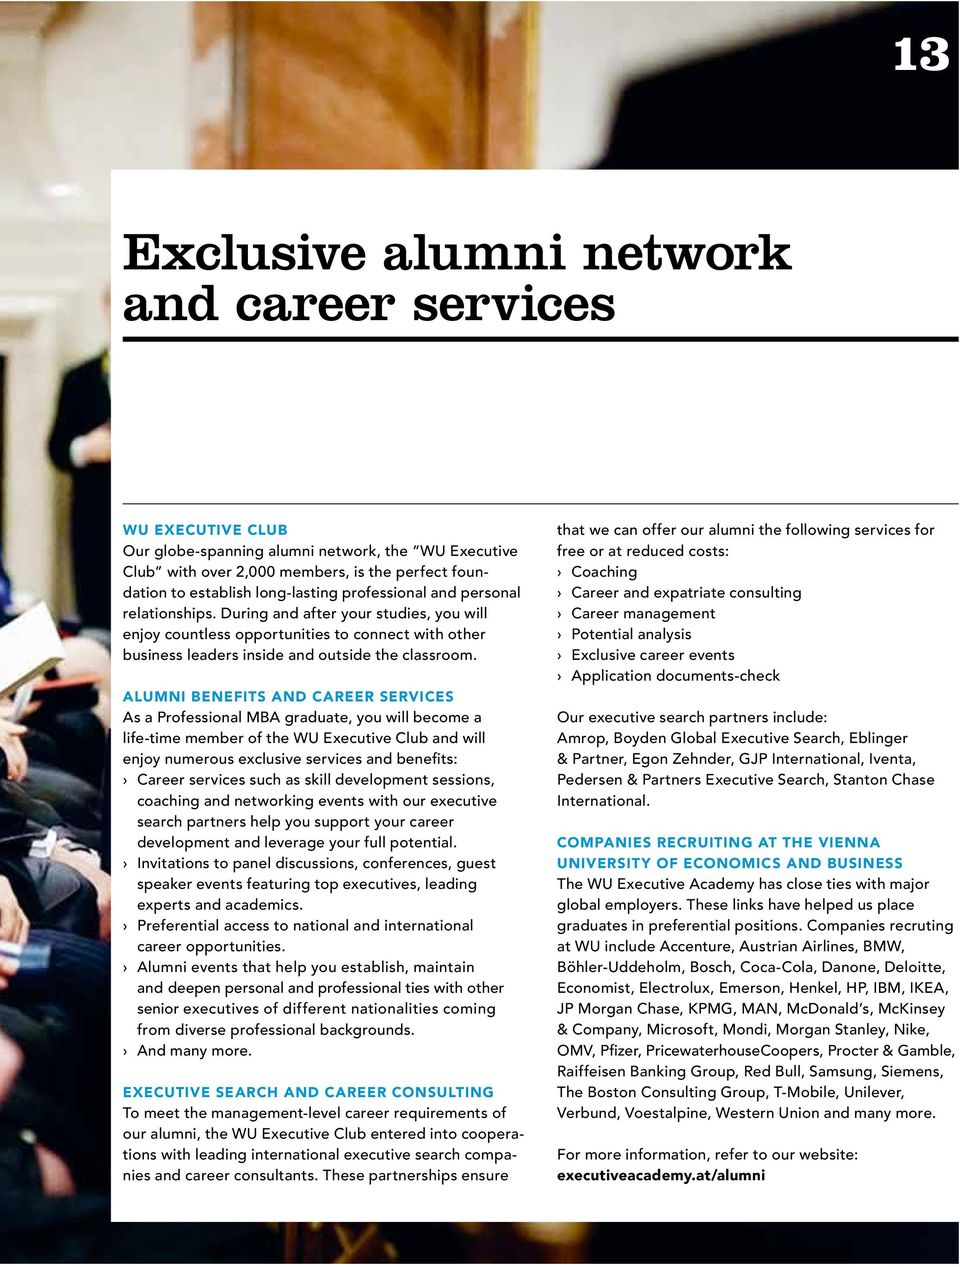 ALUMNI BENEFITS AND CAREER SERVICES As a Professional MBA graduate, you will become a life-time member of the WU Executive Club and will enjoy numerous exclusive services and benefits: Career